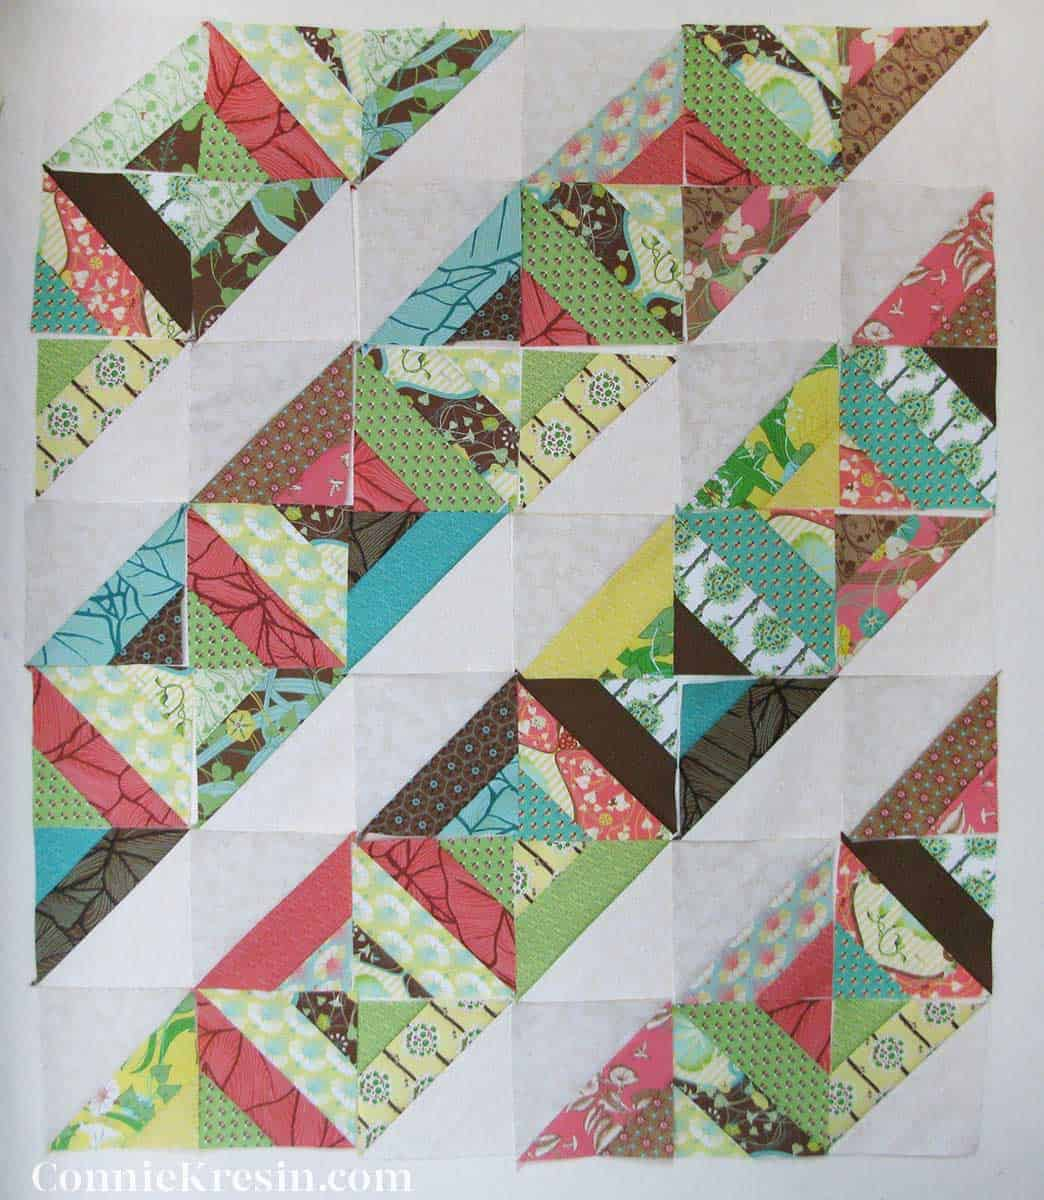 Neopolitan quilt blocks made with the strips of fabric